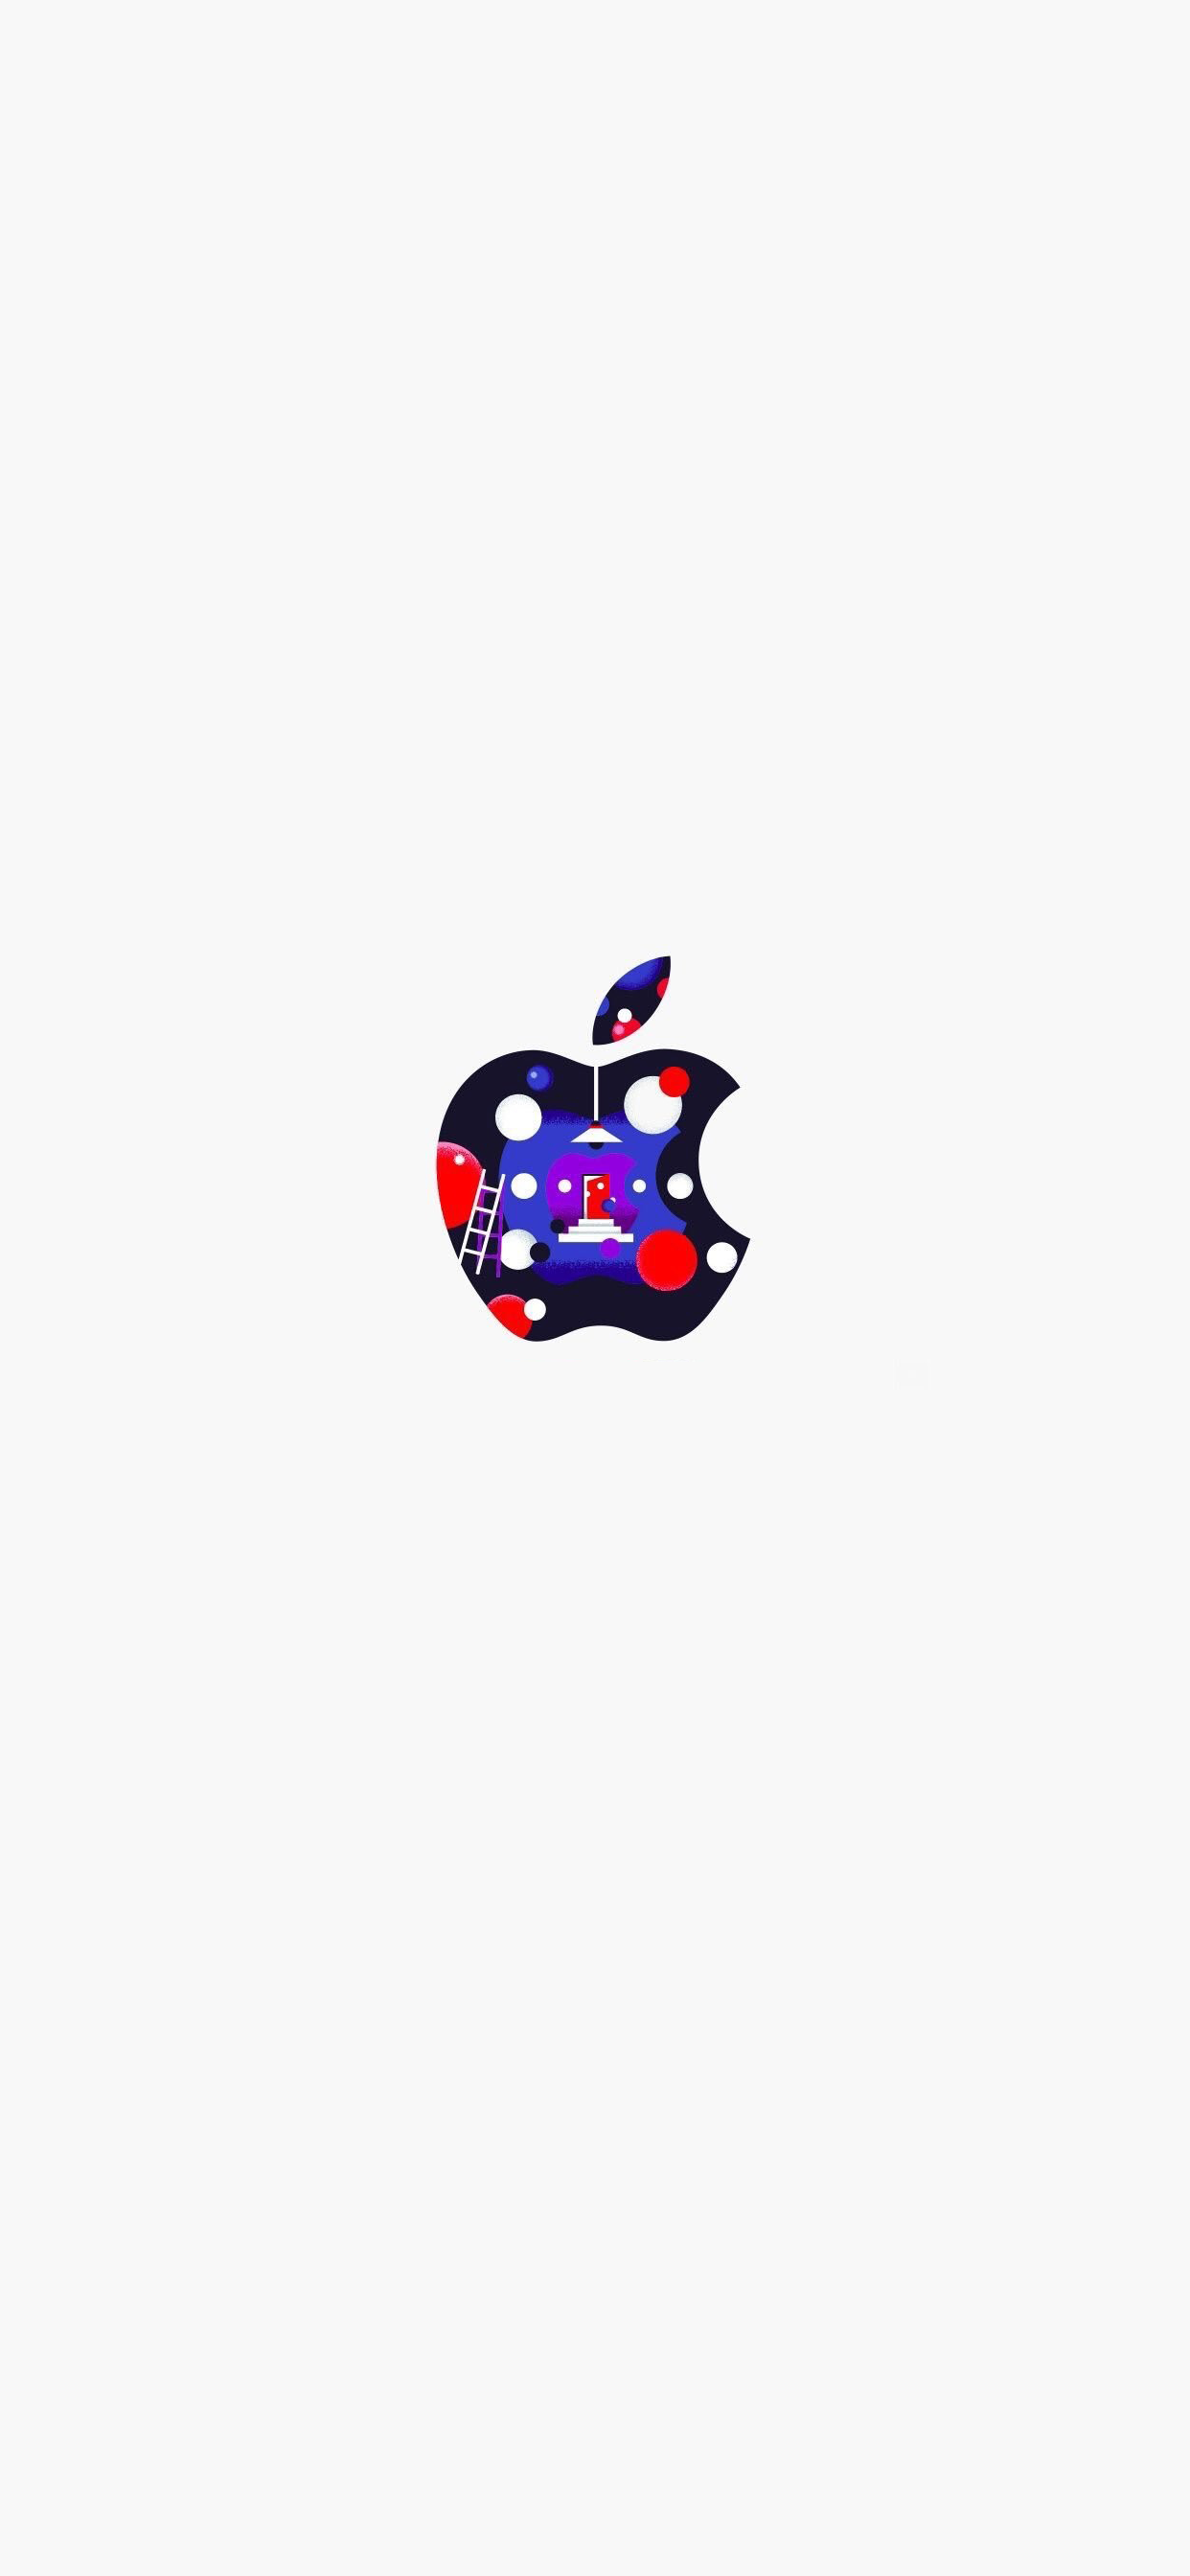 28 Apple logo